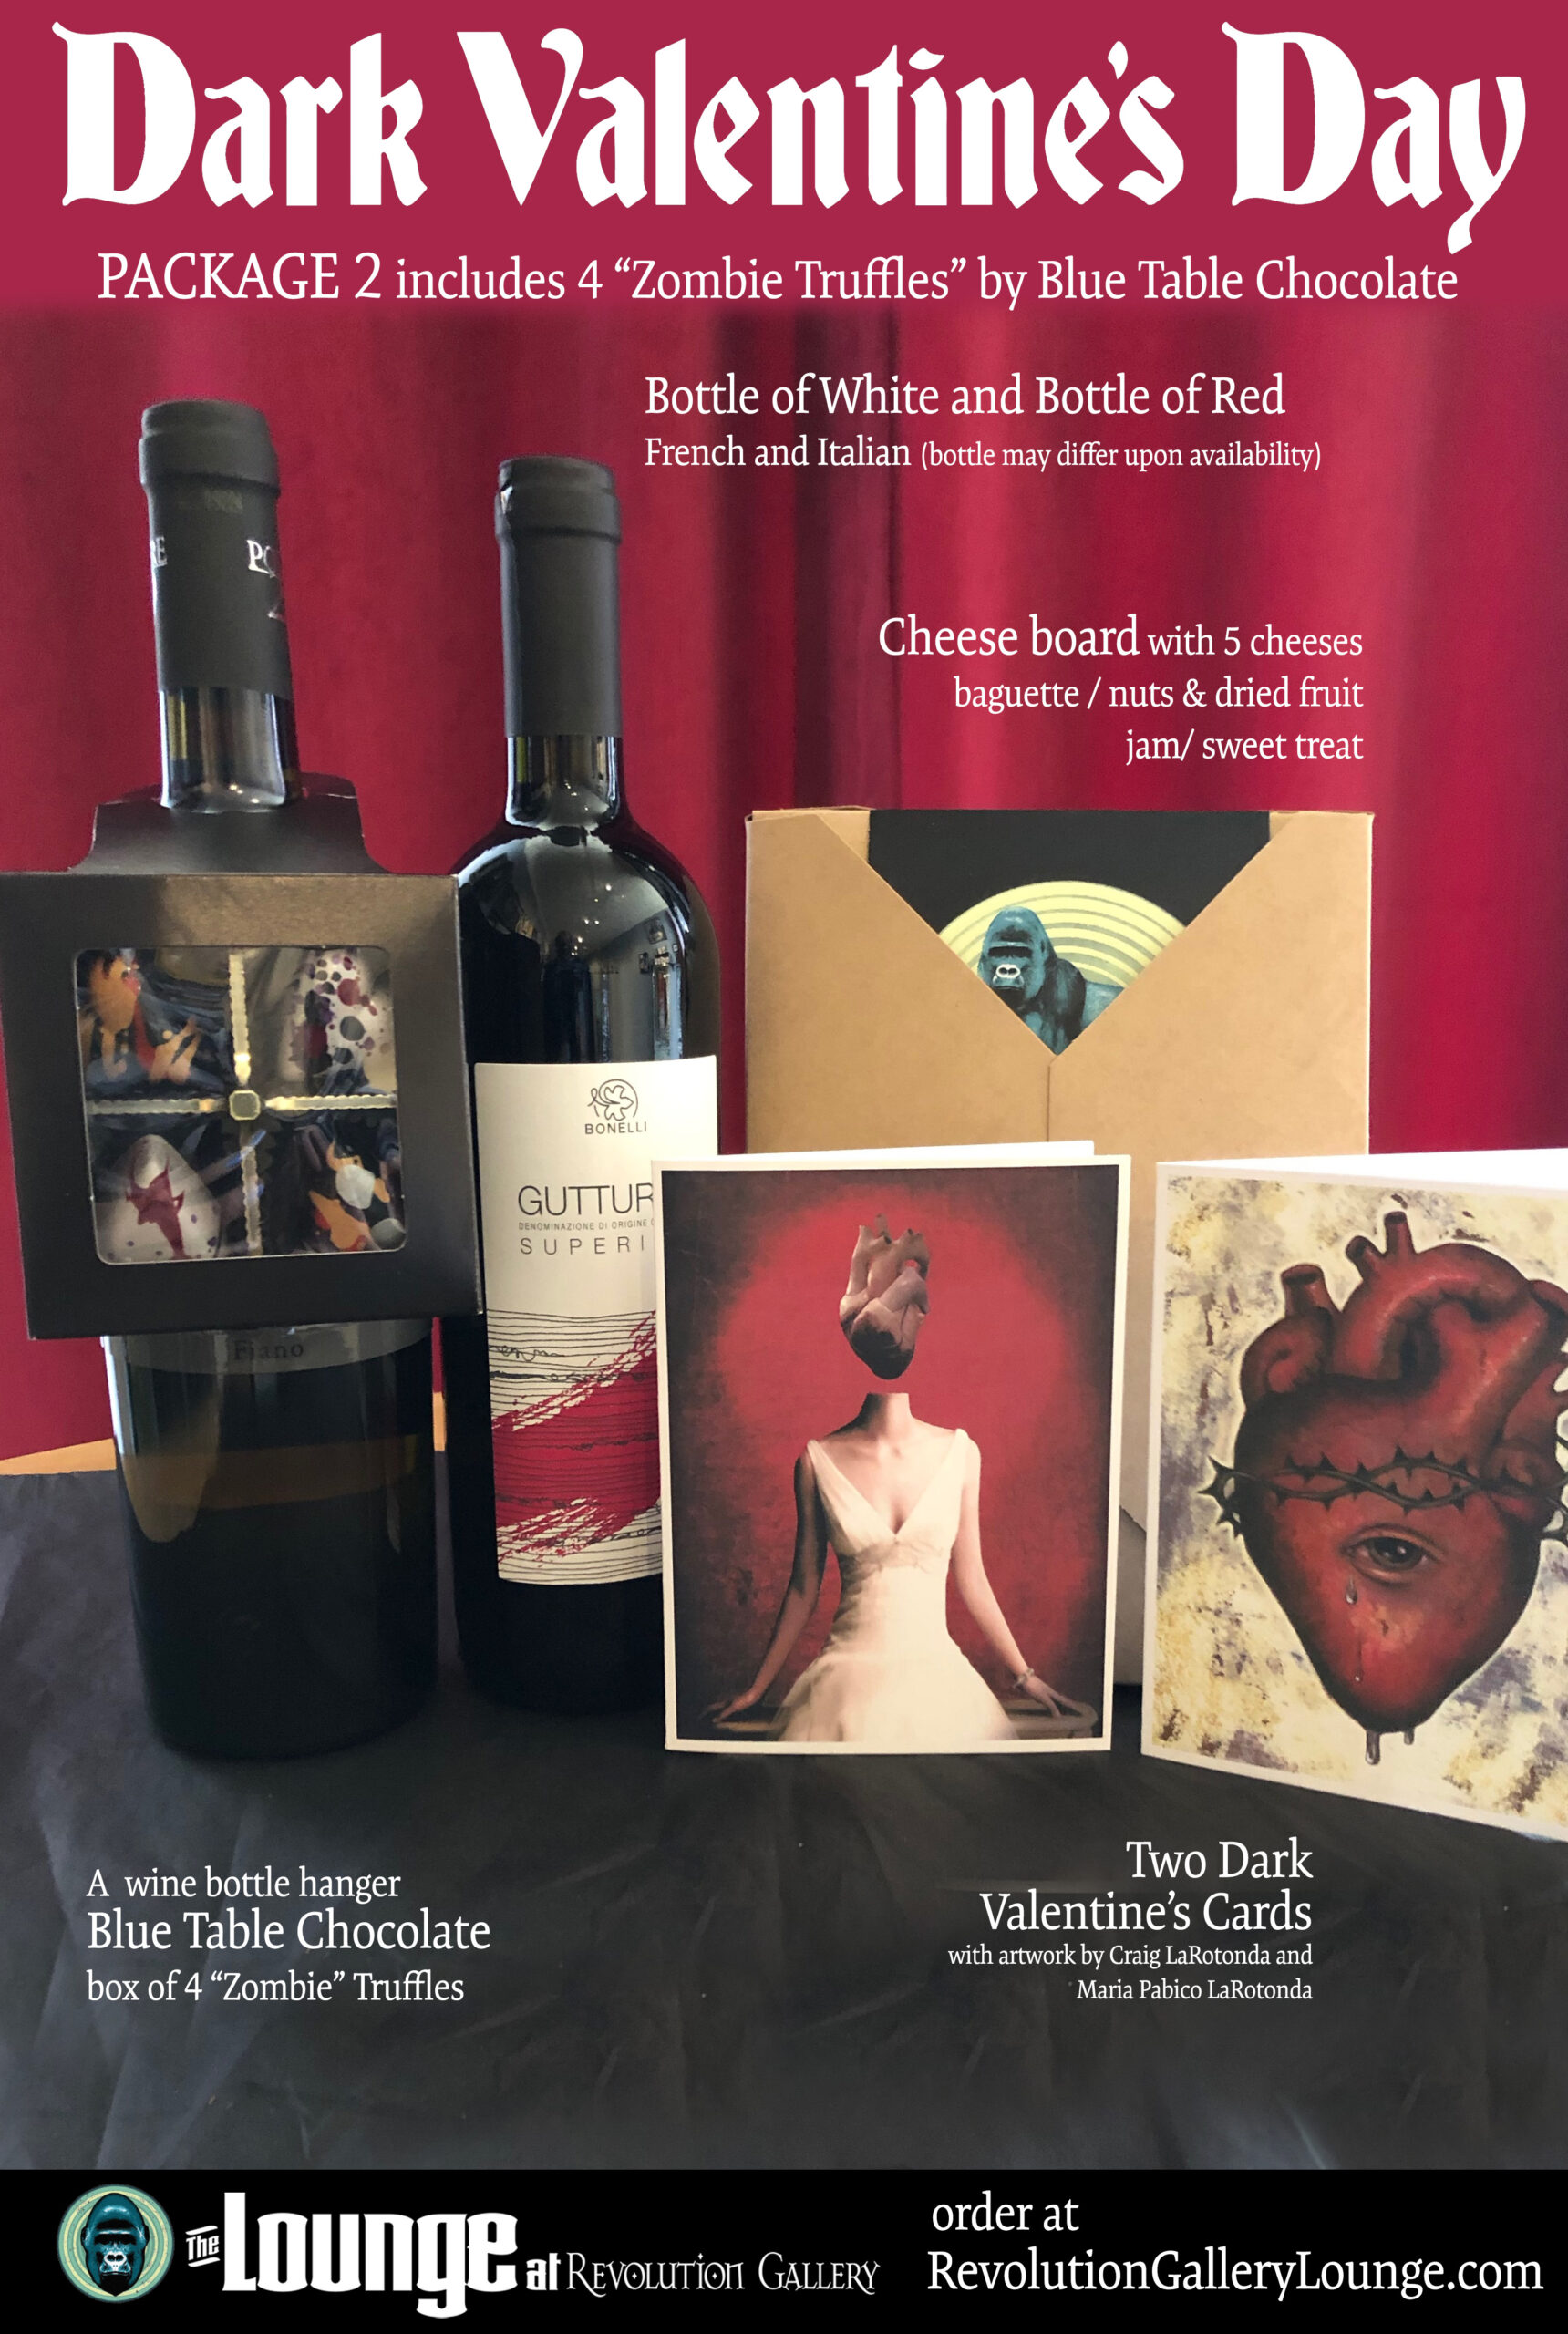 Pic of two bottles of wine, art cards, cheese board in package, chocolates